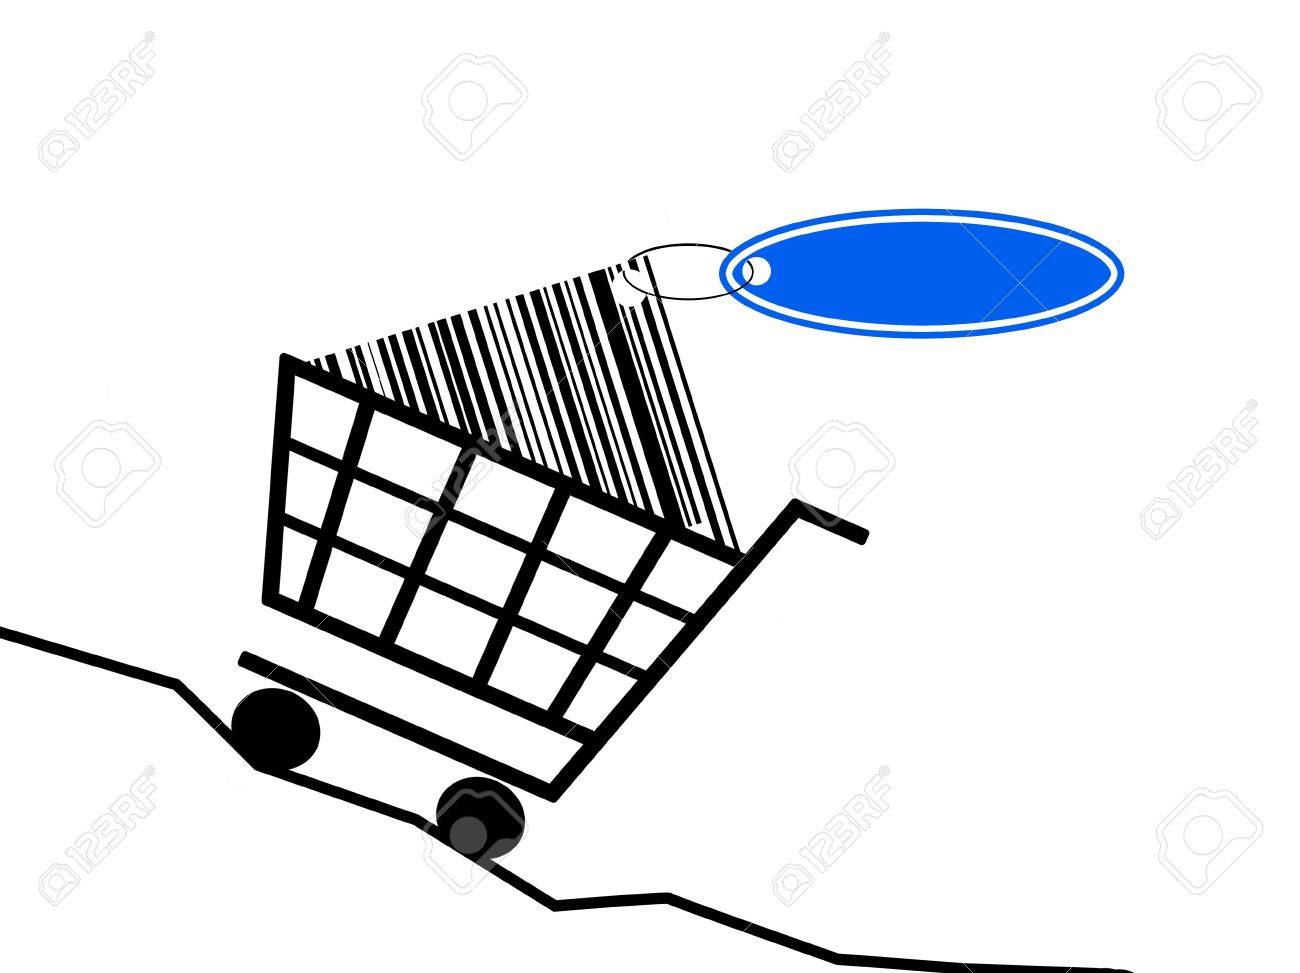 a shopping basket scale the rising prices. Stock Photo - 6055881